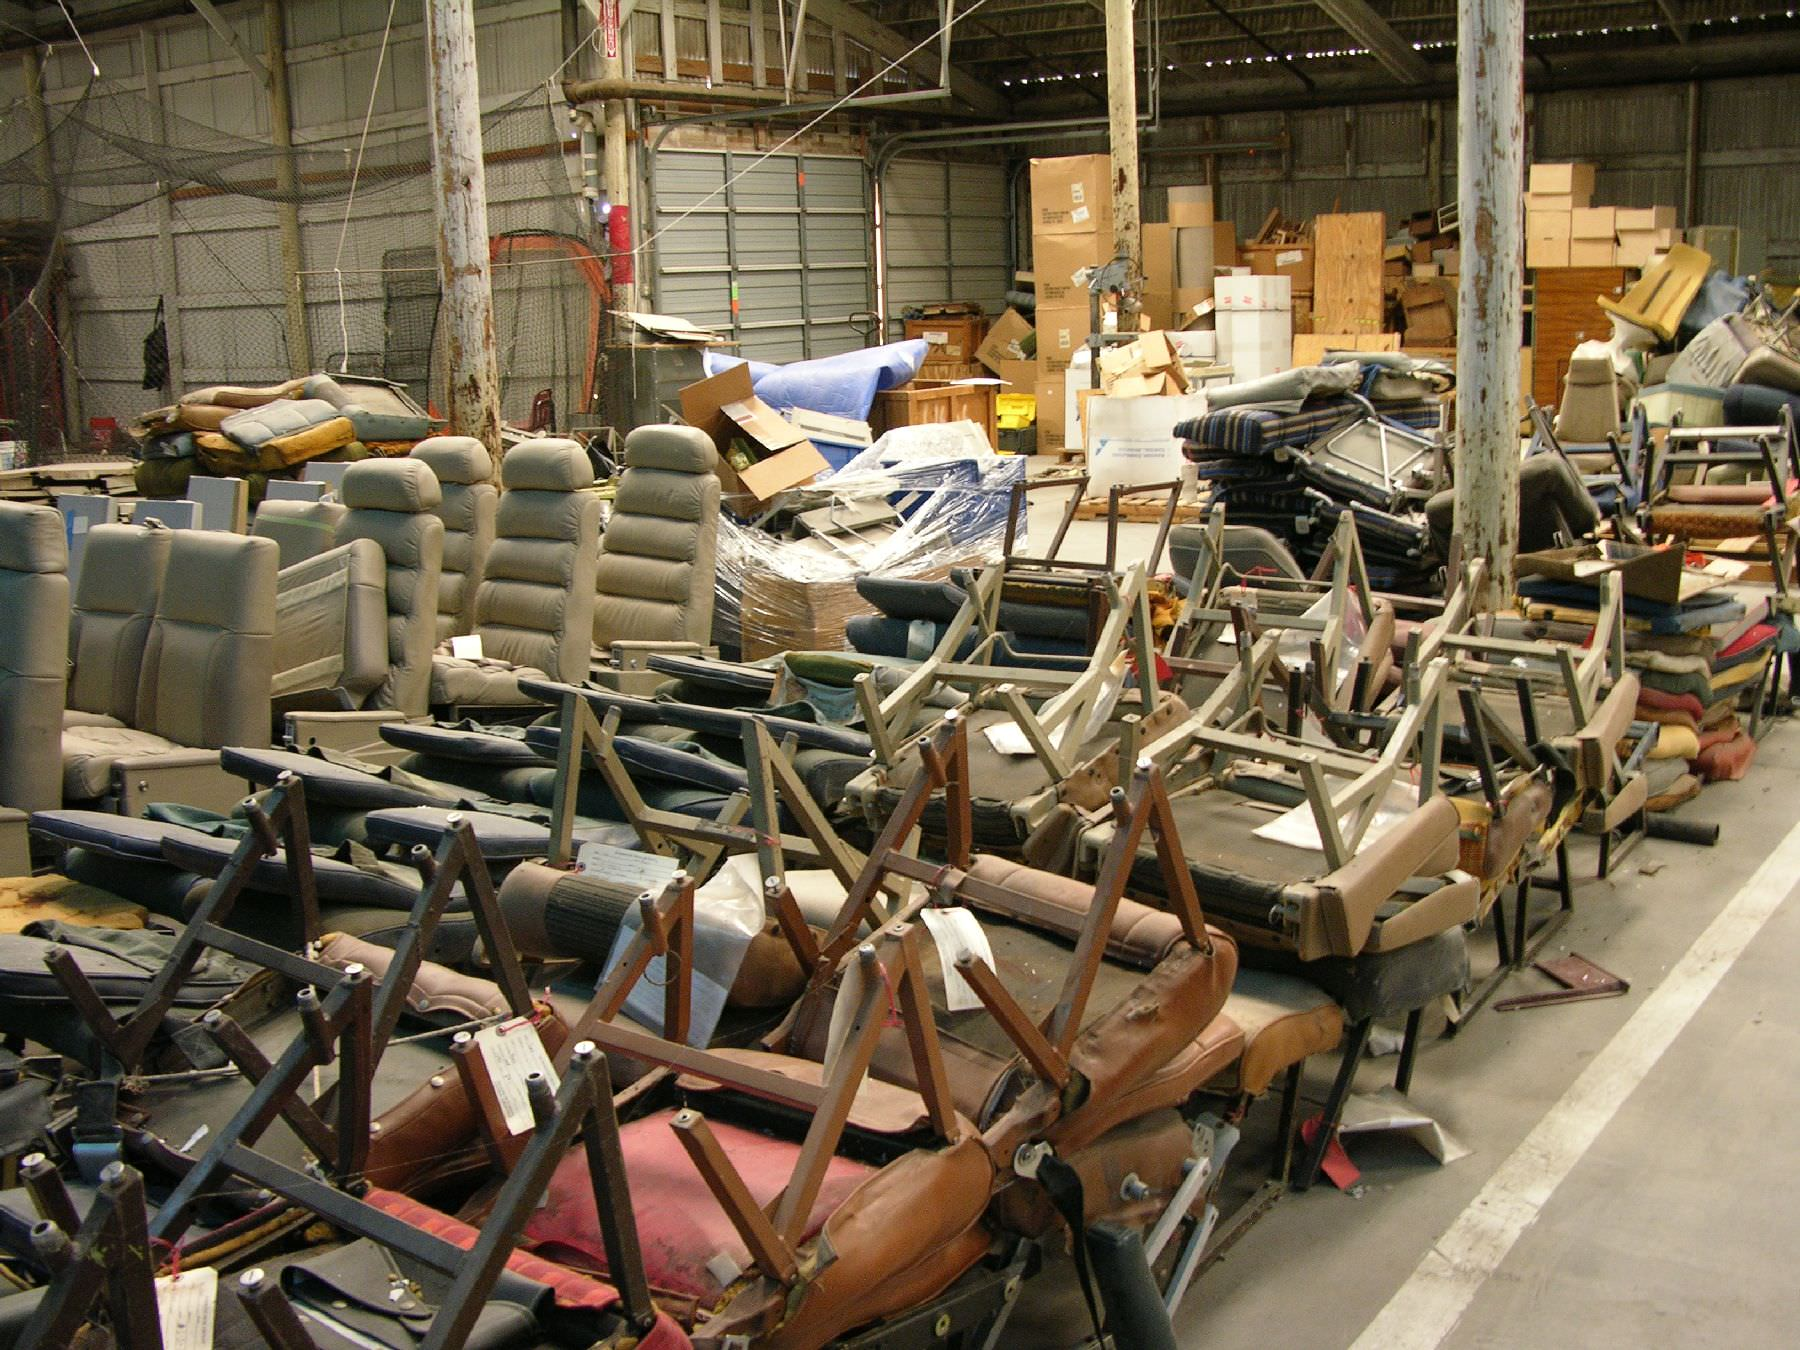 AvFab has the world's largest inventory of cabin class interior parts, over 90,000 sq. ft!  This inventory includes seats, divans, couches, cabinetry, furniture, partitions, galleys, chart holders, coffee makers, heated liquid containers, ice bins, and so